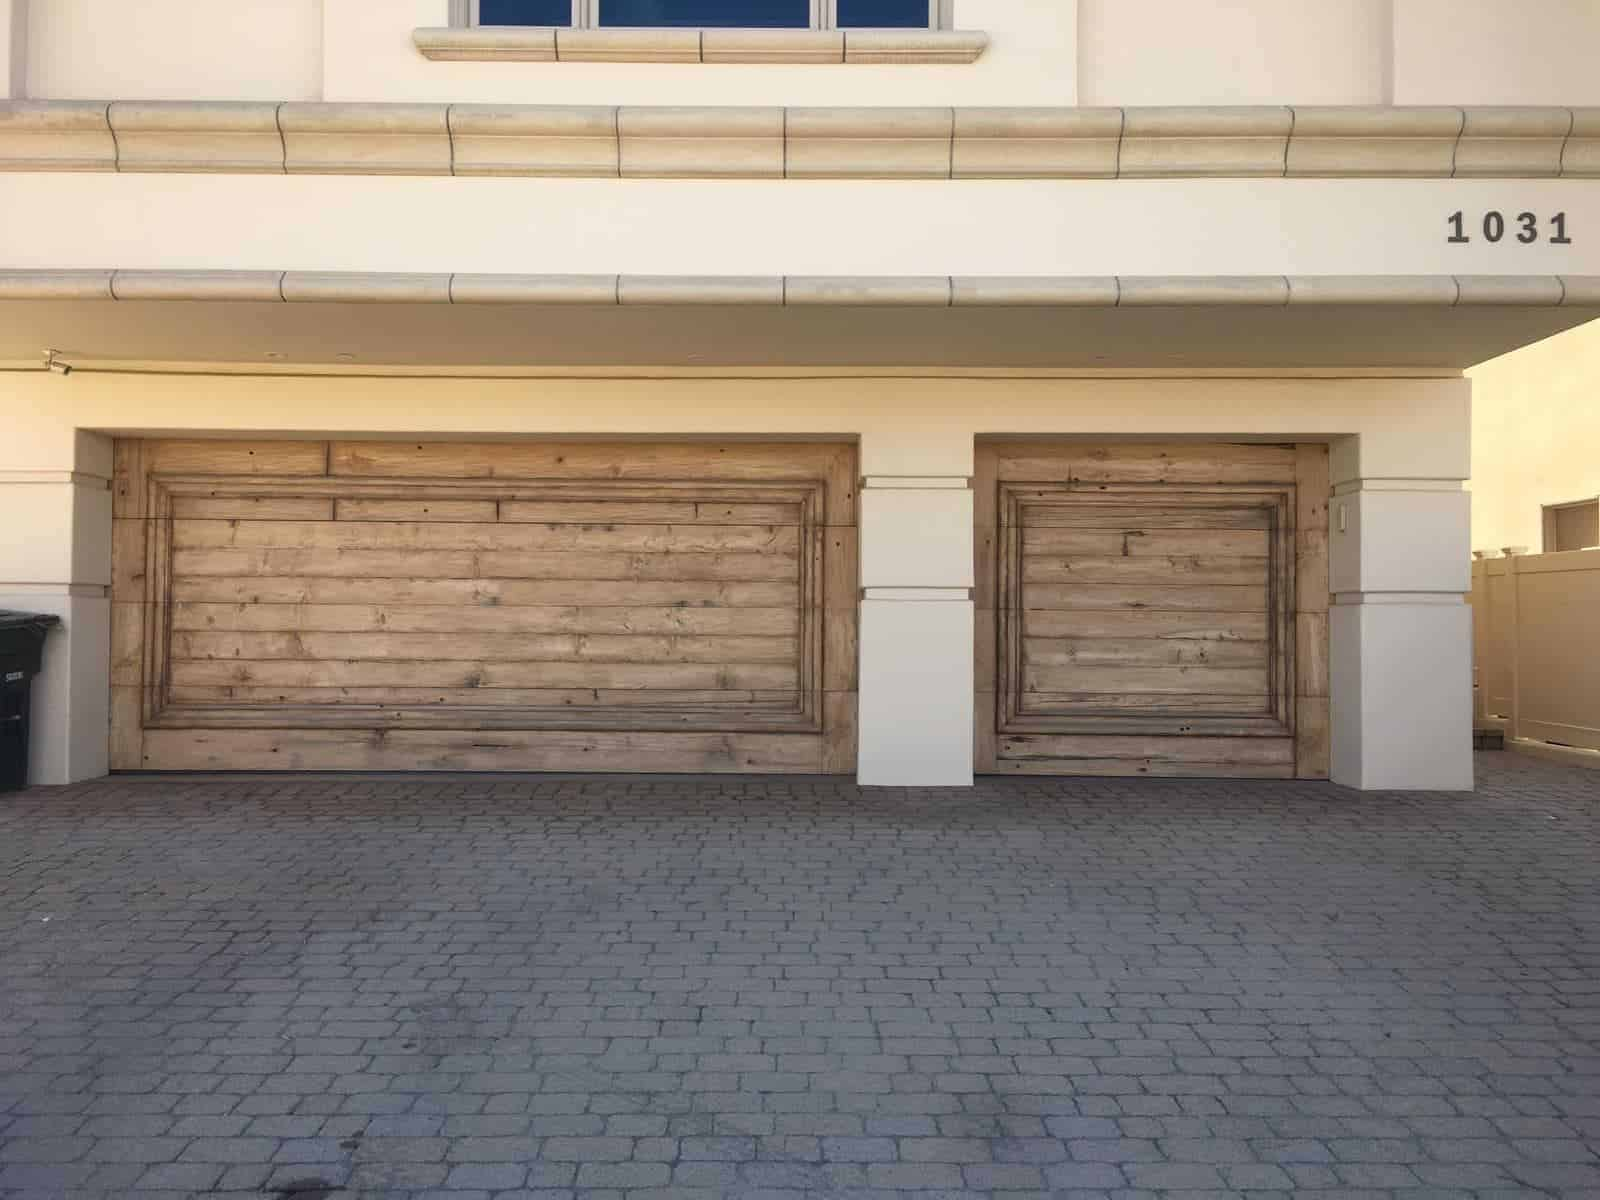 Stockton Garage door repair and replacement